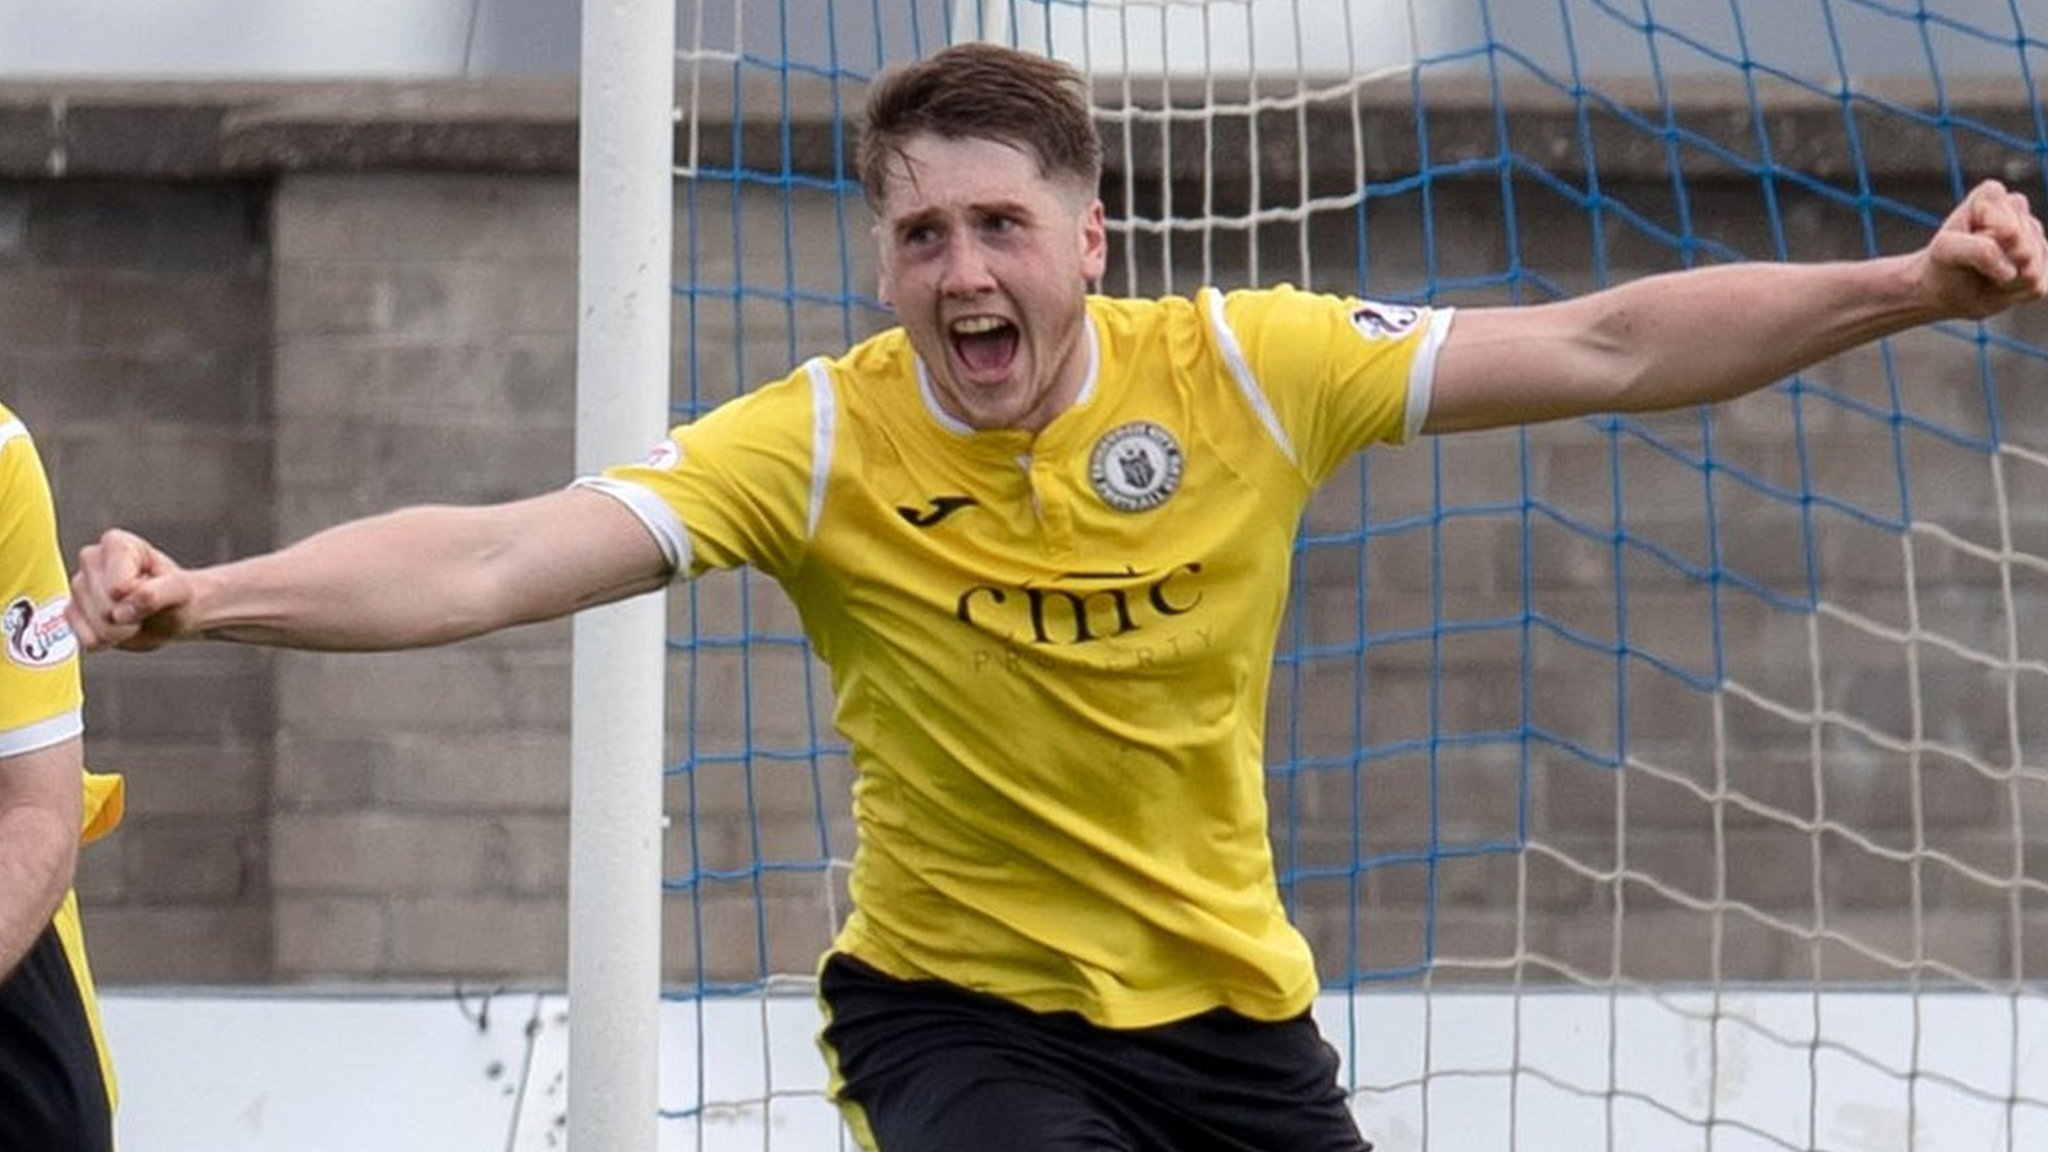 Scottish League Two: Edinburgh City beat third place Annan to stay top